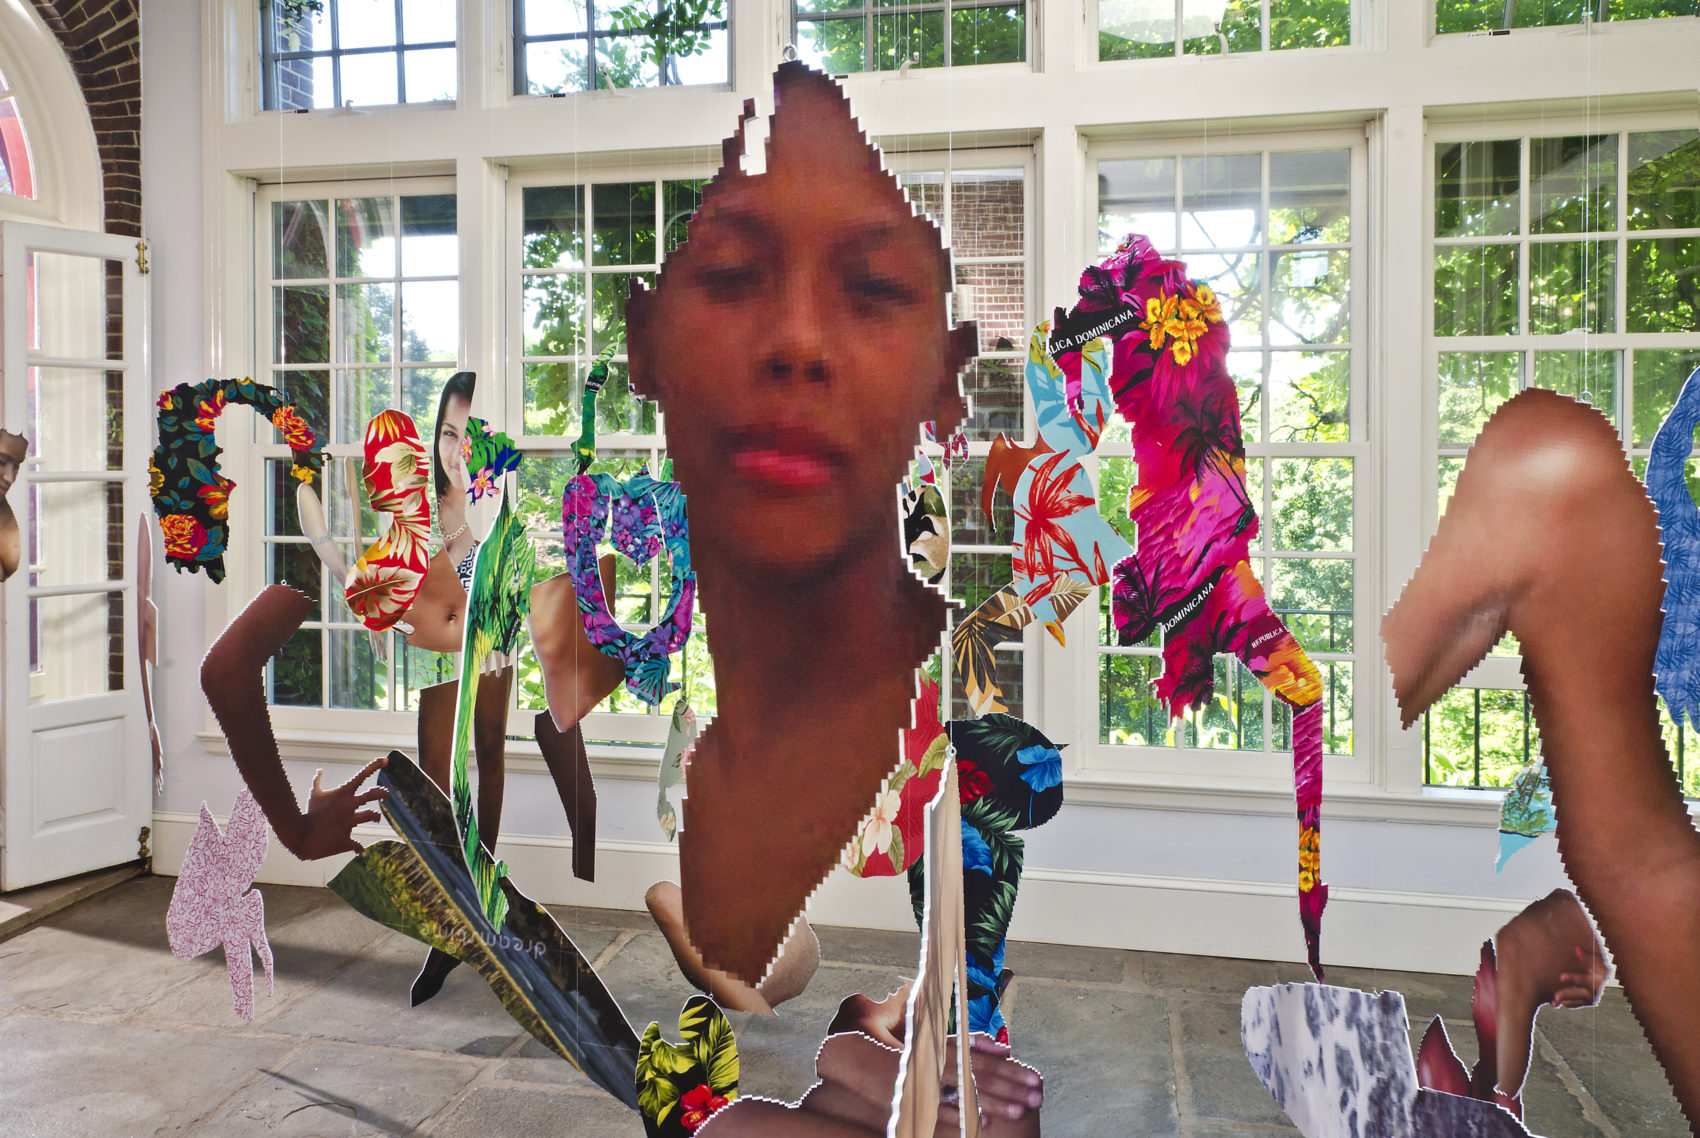 Joiri Minaya's  #dominicanwomengooglesearch, pictured in 2016 at the Sunroom Project Space at Wave Hill in the Bronx, NY. (Photo by Stefan Hagen)